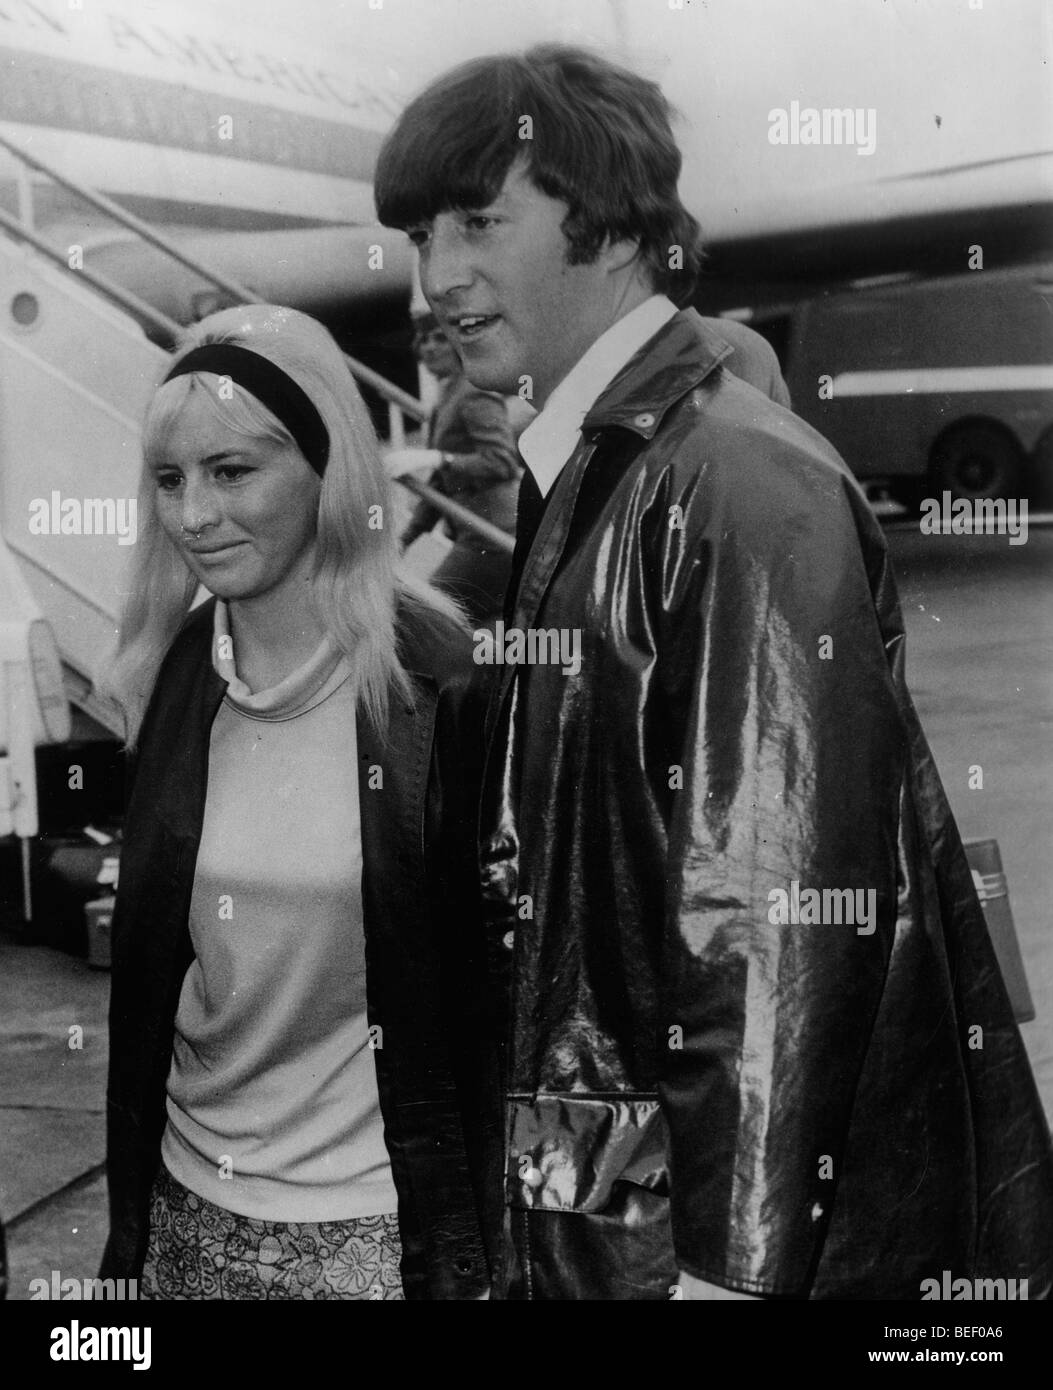 Beatle John Lennon with his first wife Cynthia Powell in 1967. Stock Photo